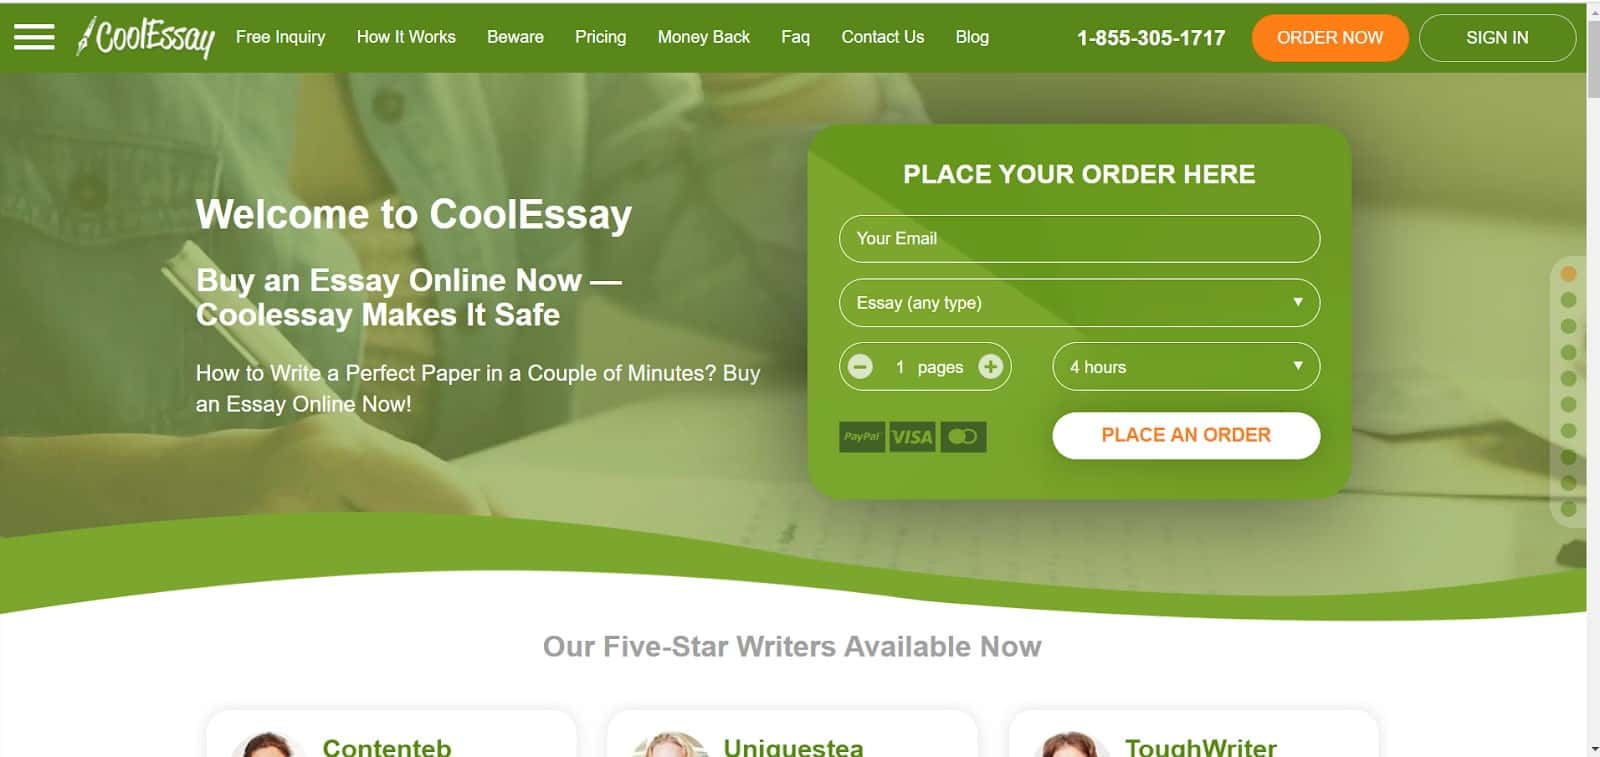 CoolEssay Review 2020: Does it Write Quality Essays?